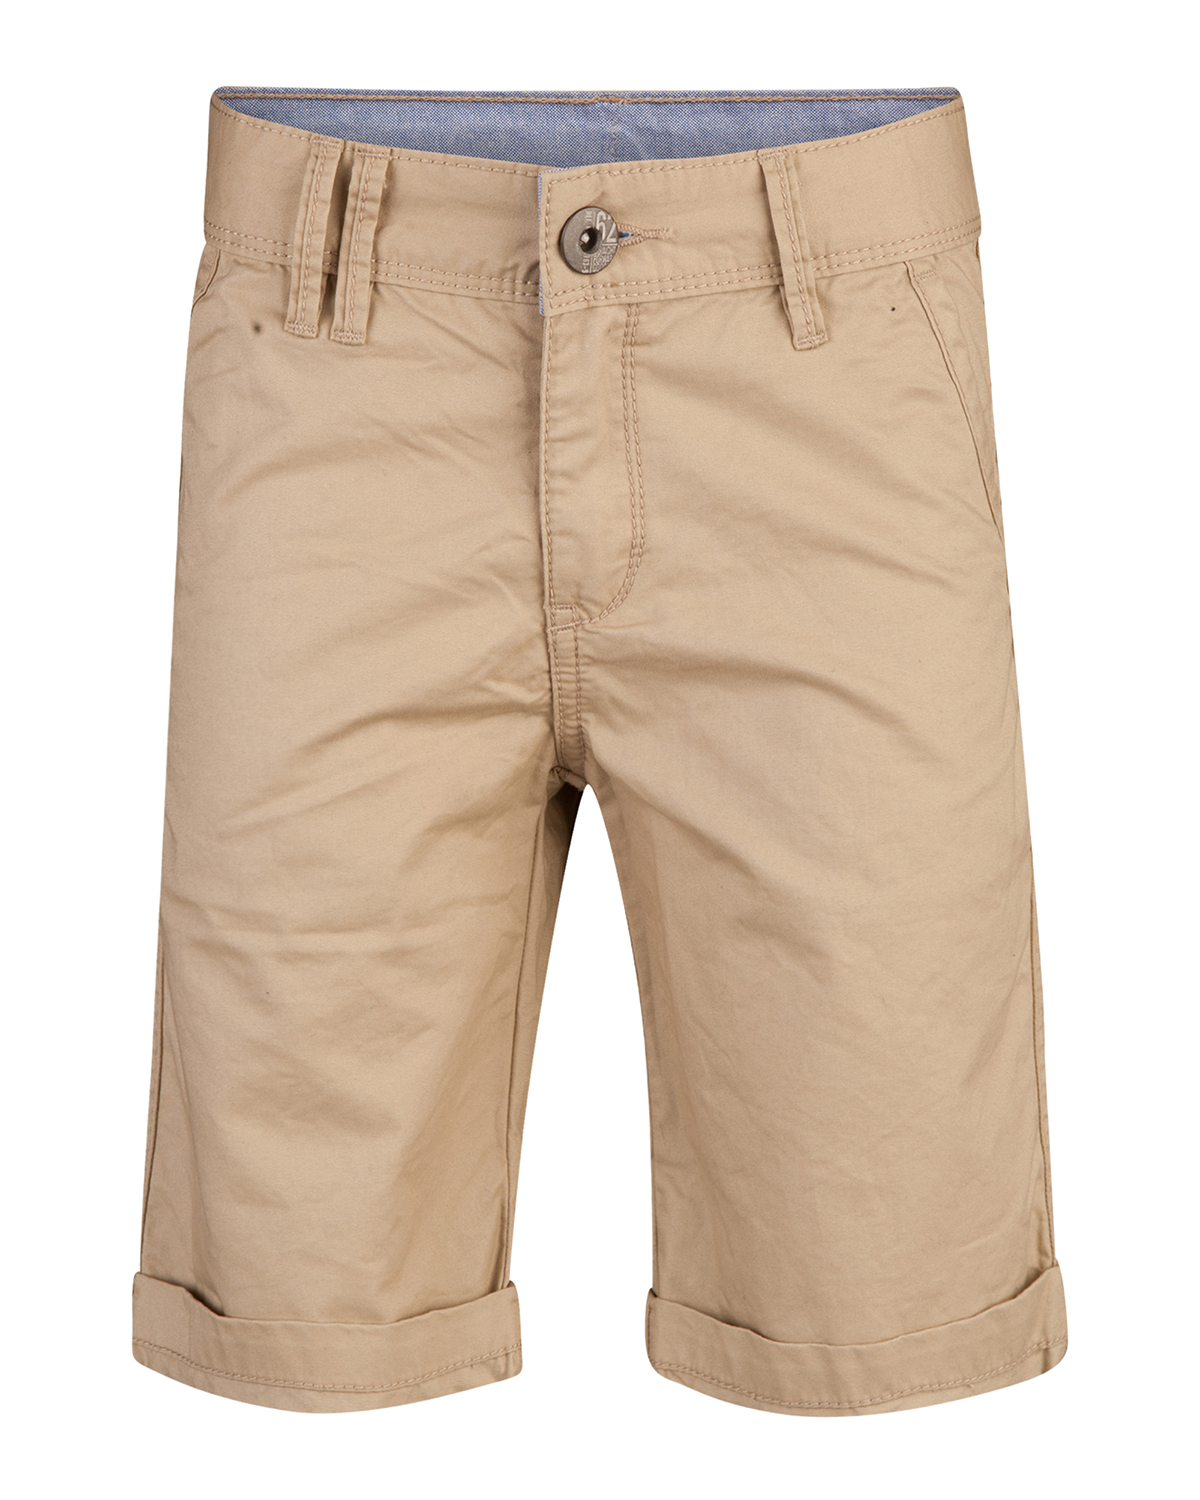 Jongens regular fit garment dye chino short